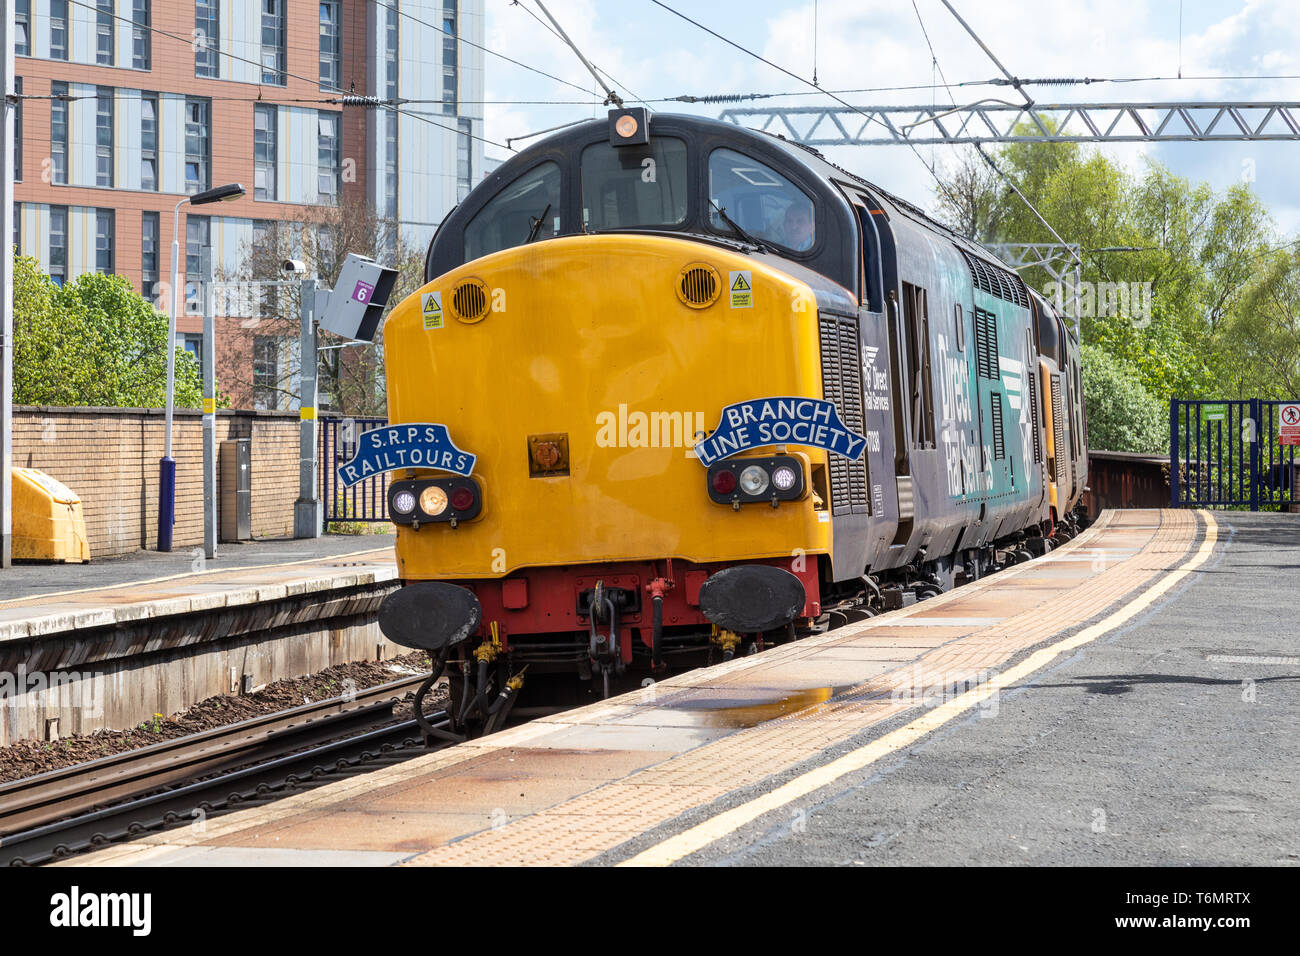 37038 powers through Partick station on the suburban Glasgow train network whilst pulling the SRPS Branch Line Society rail tour - Stock Image